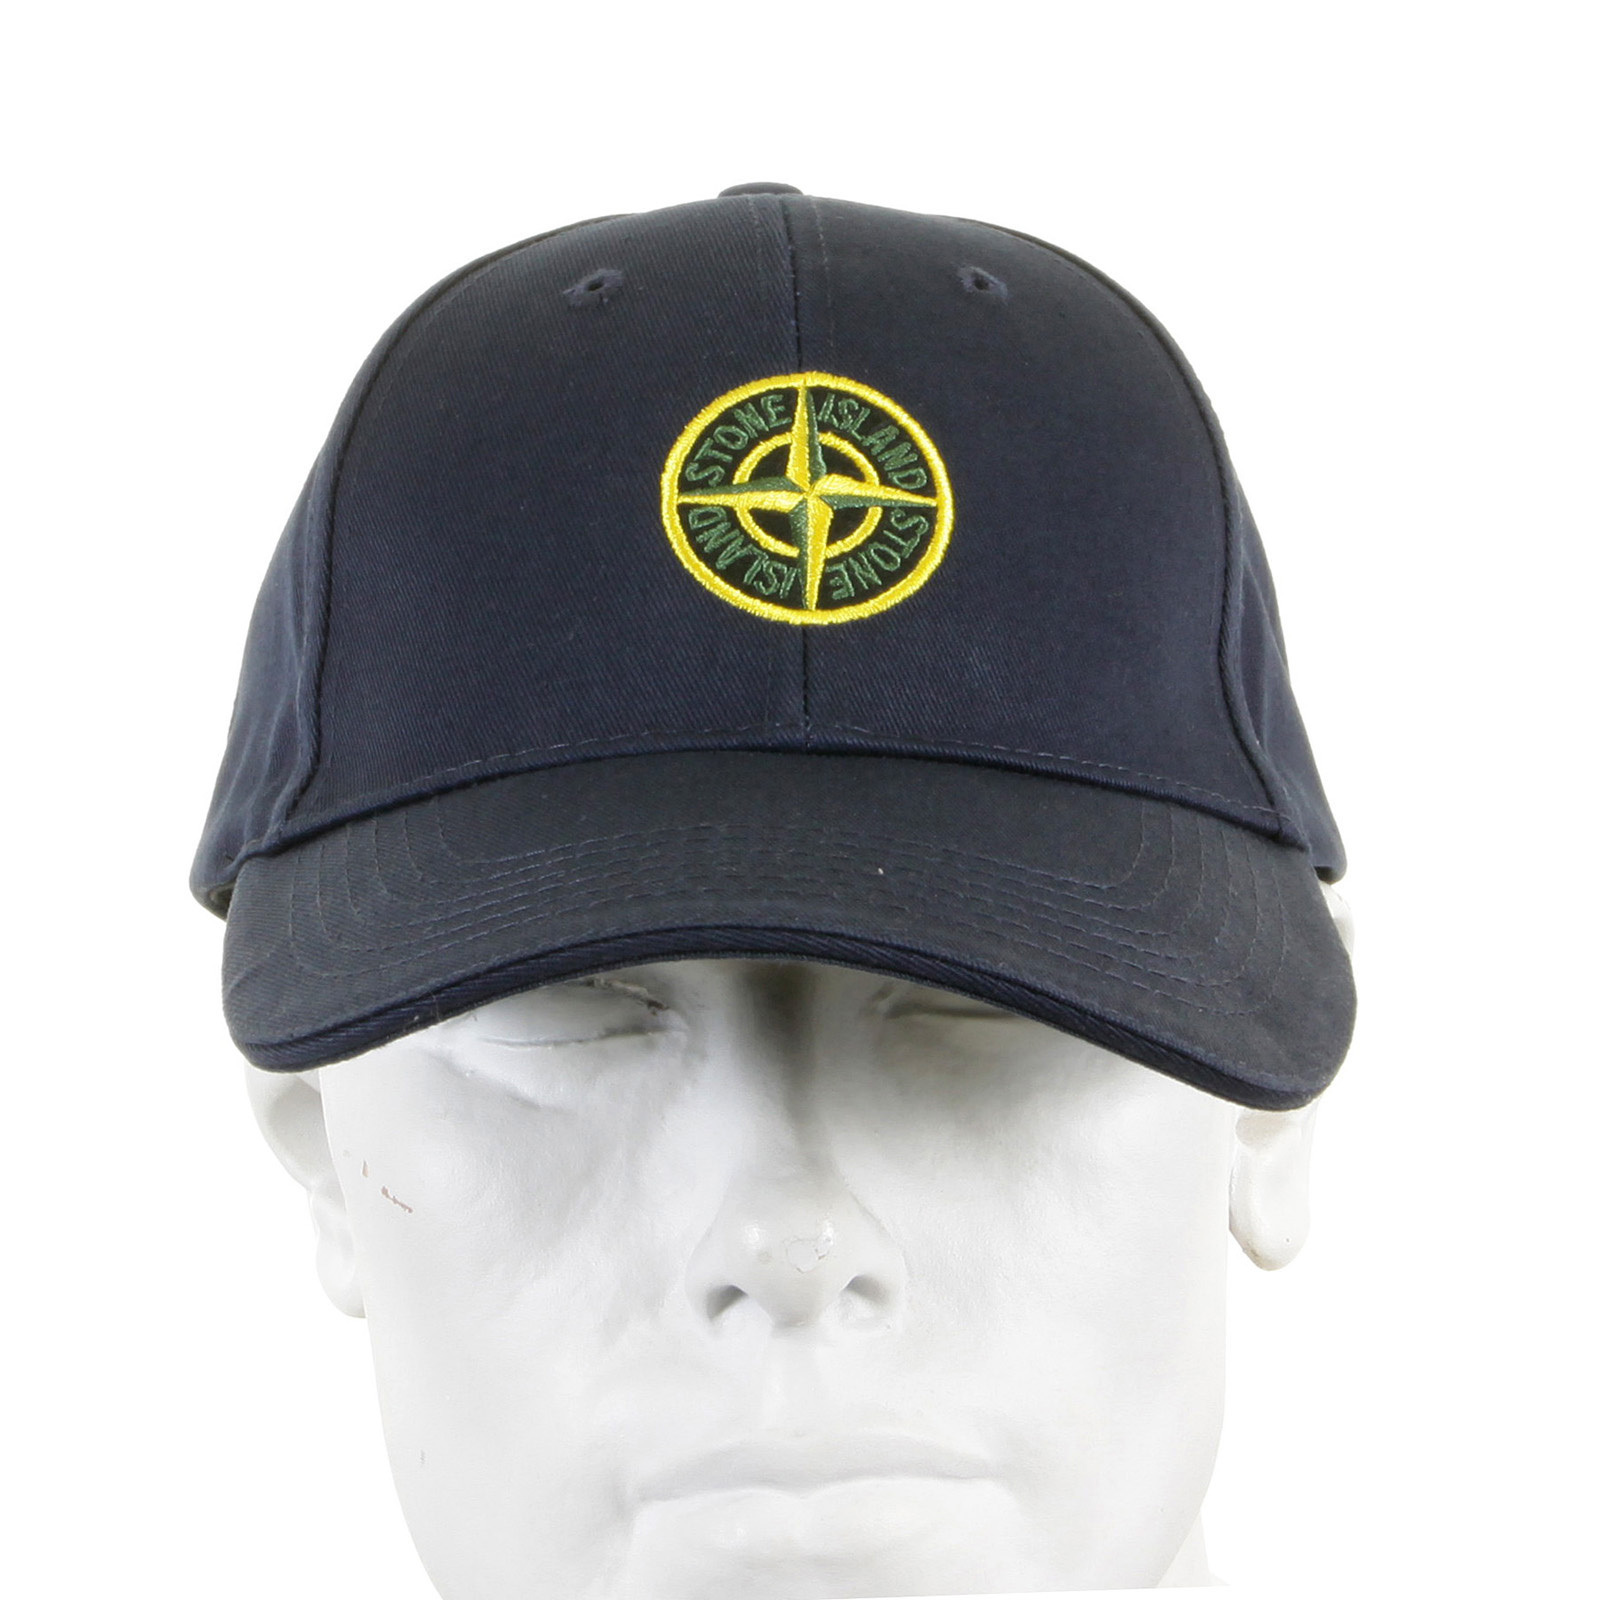 8d55f287f6d Stone Island Cap navy cotton baseball cap SI2754 at Togged Clothing